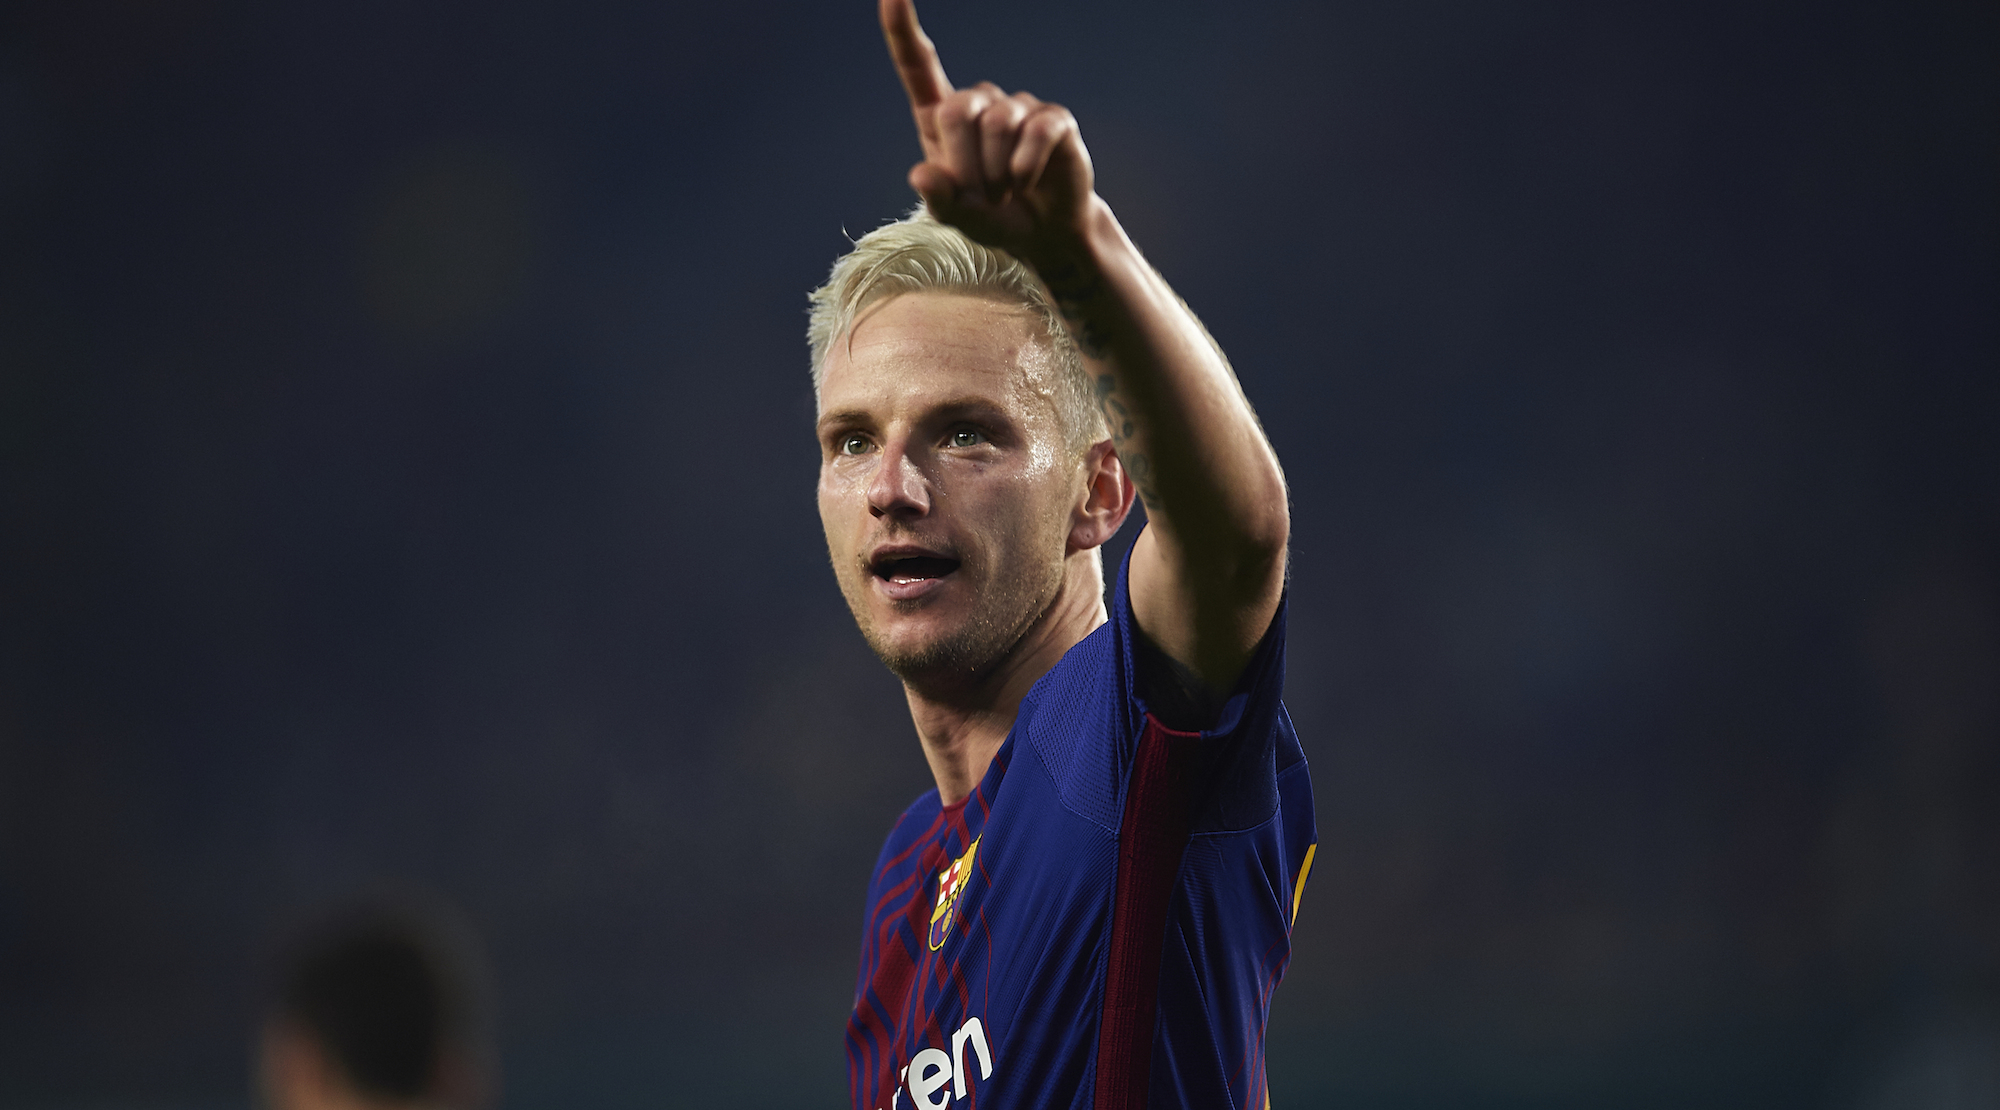 SEVILLE, SPAIN - JANUARY 21: Ivan Rakitic of FC Barcelona celebrates after scoring the first goal for FC Barcelona during the La Liga match between Real Betis and Barcelona at Estadio Benito Villamarin on January 21, 2018 in Seville, . (Photo by Aitor Alcalde/Getty Images)